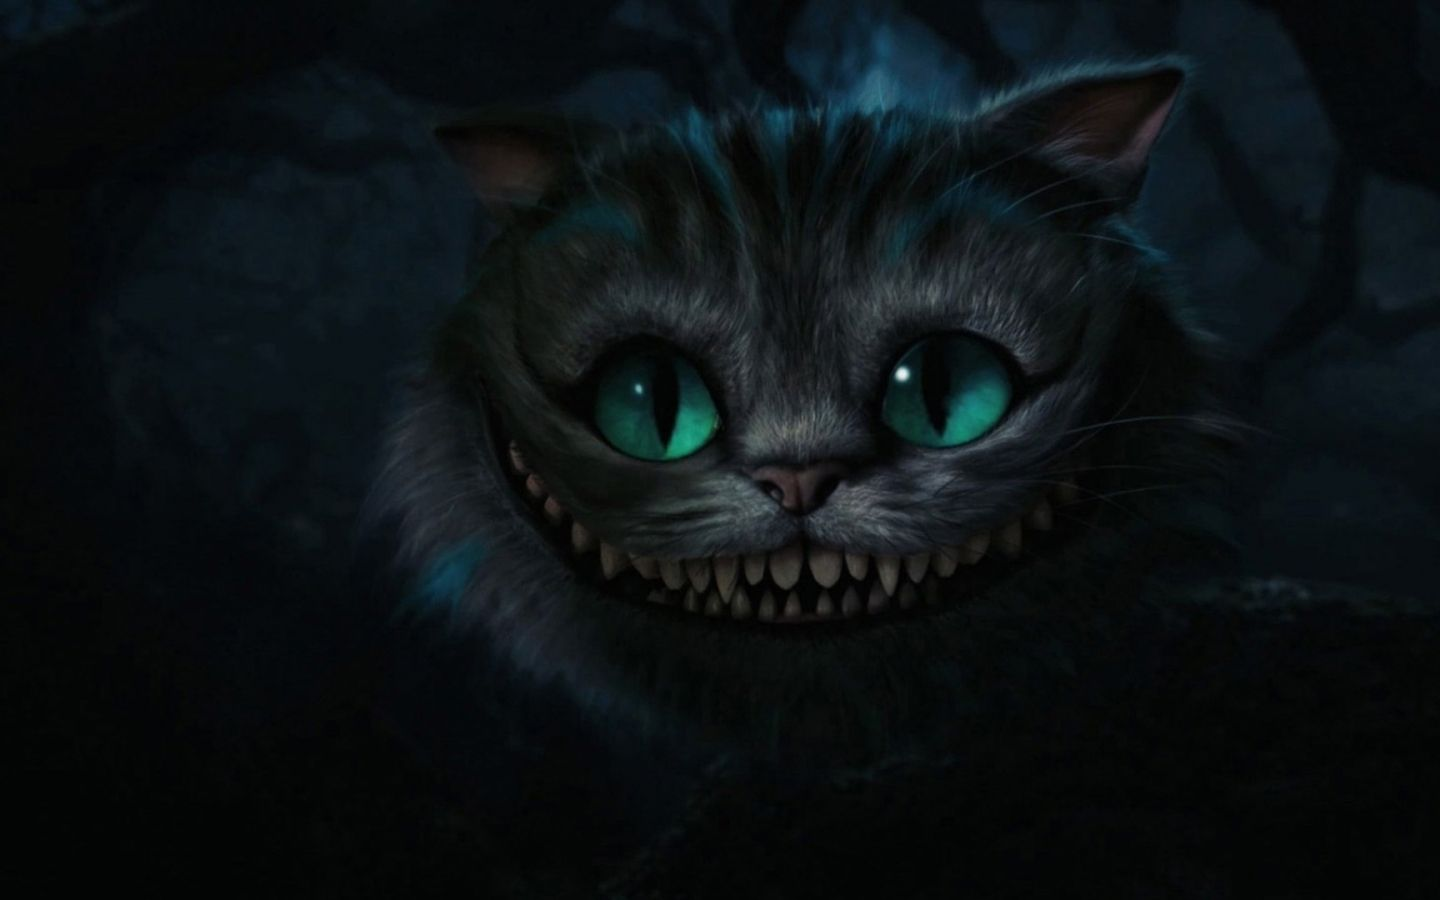 Alice In Wonderland Artwork Tim Burton Cheshire Cat 1920x1080